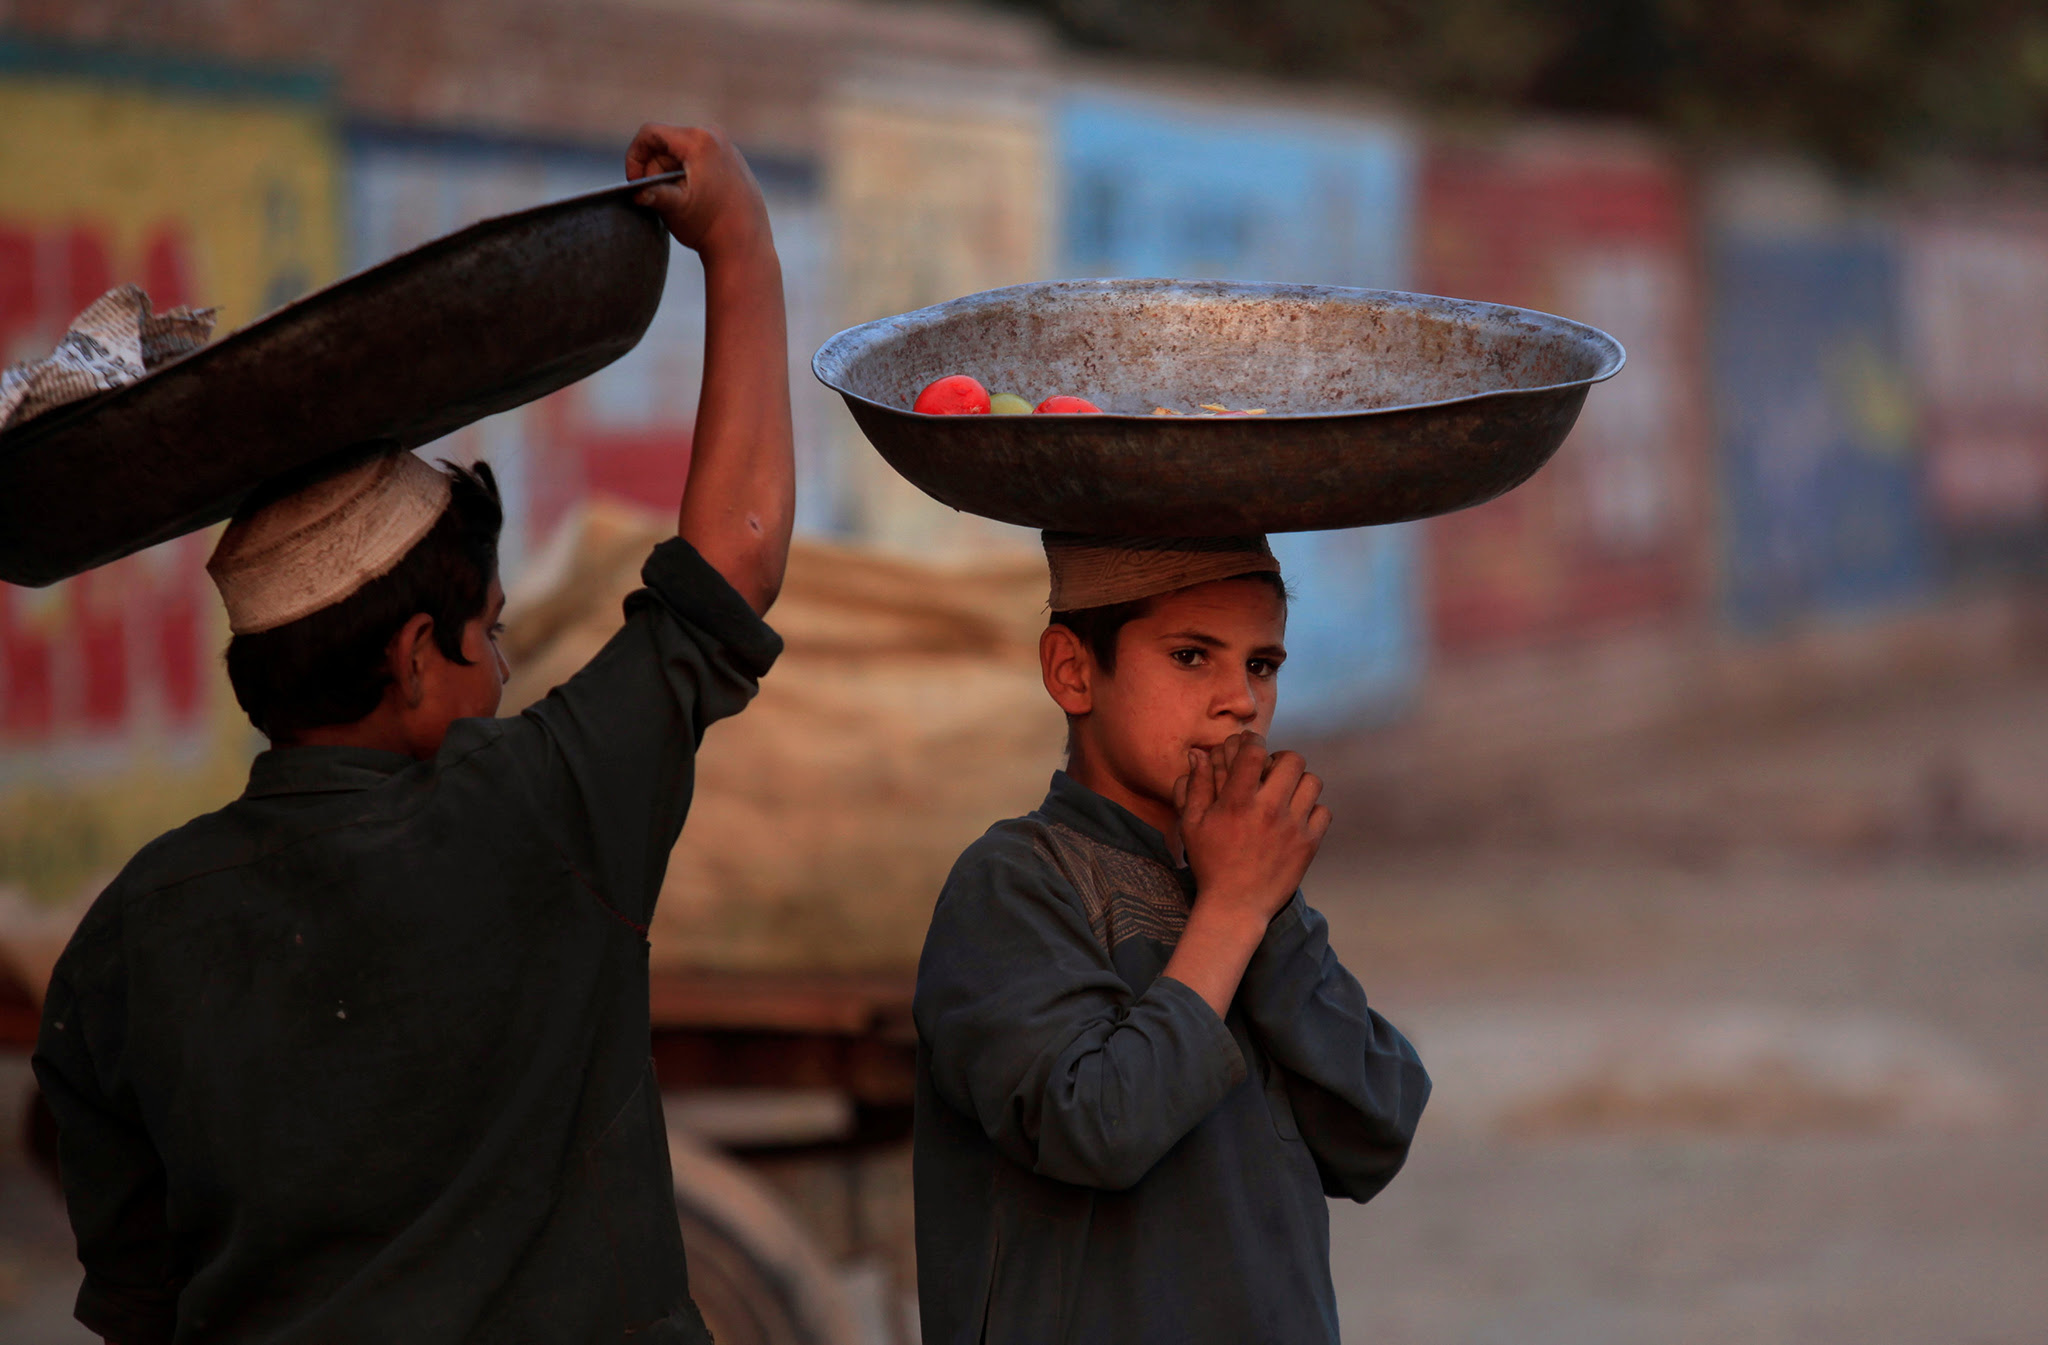 Boys wait to collect vegetables from a pile of rotten vegetables near a dustbin in Peshawar, Pakistan November 10, 2016 REUTERS/Fayaz Aziz